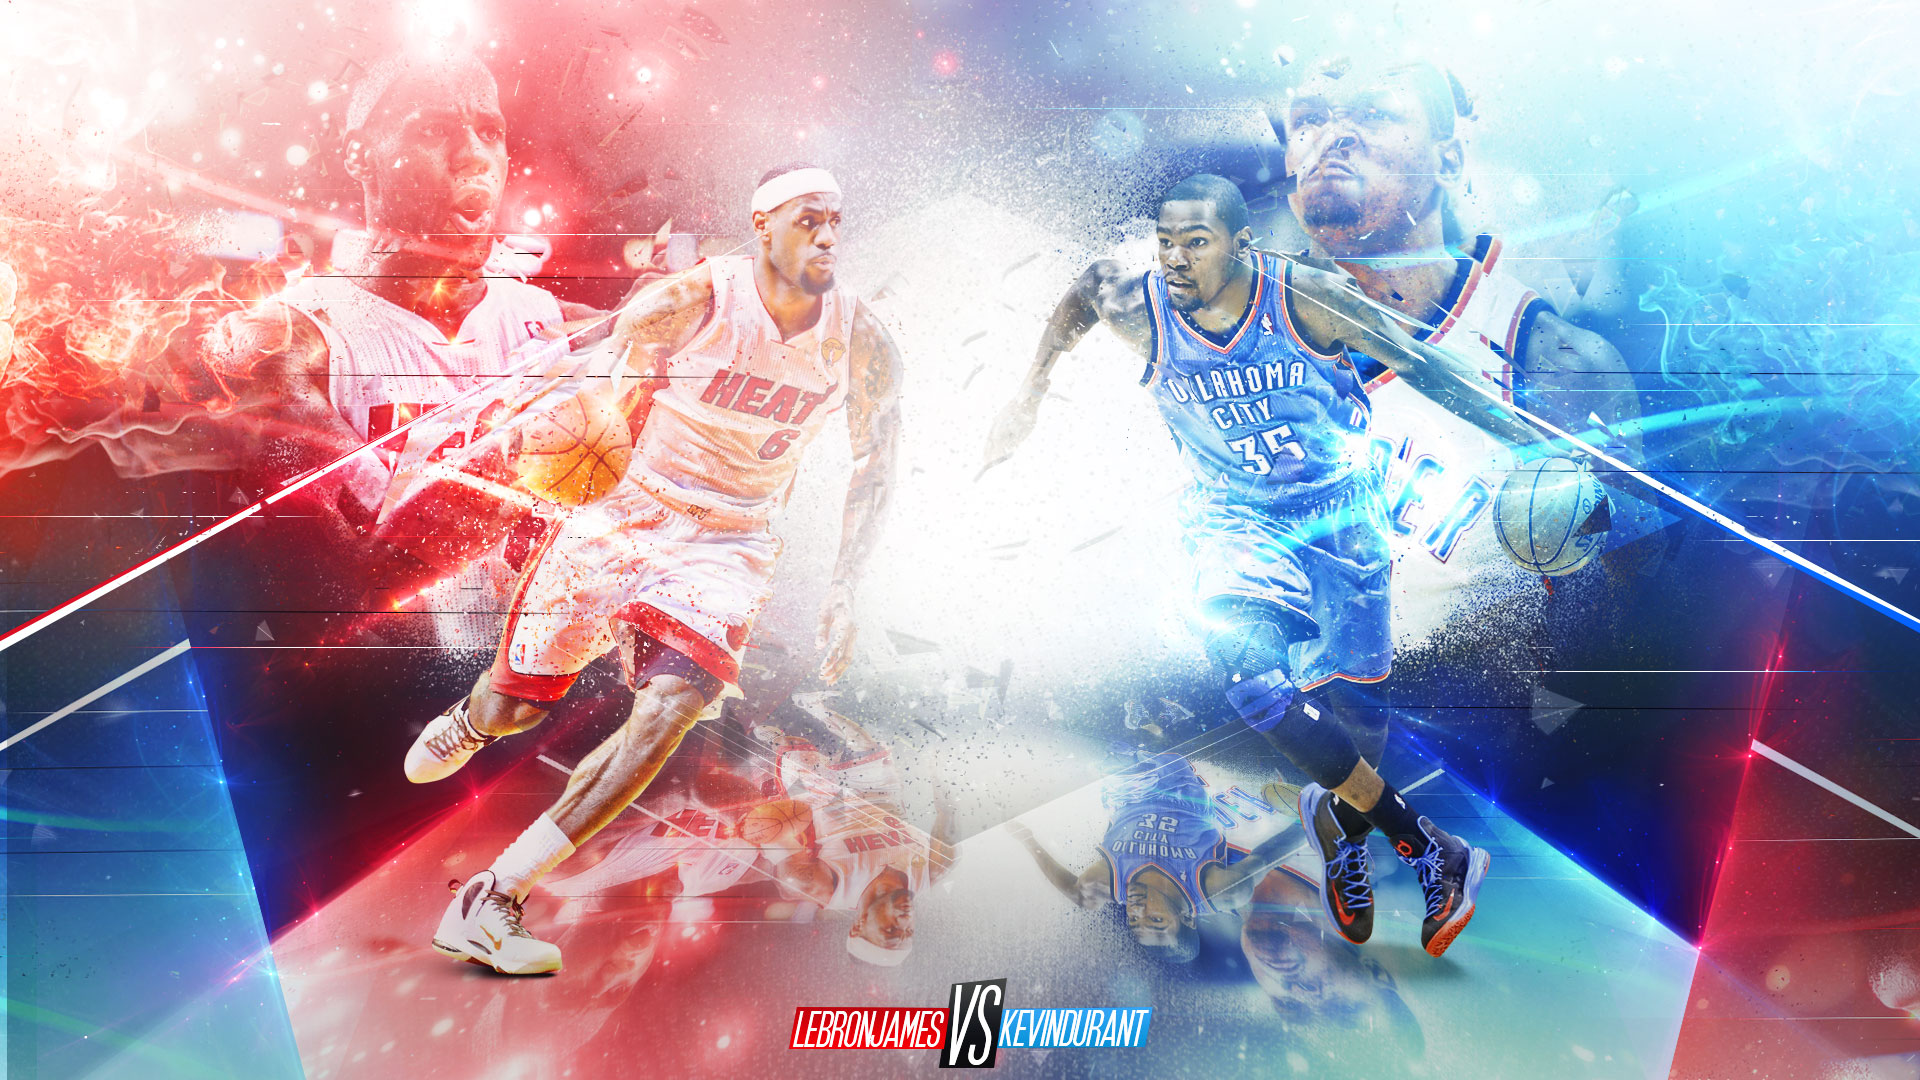 LeBron James vs Kevin Durant Wallpaper is a hi res Wallpaper 1920x1080